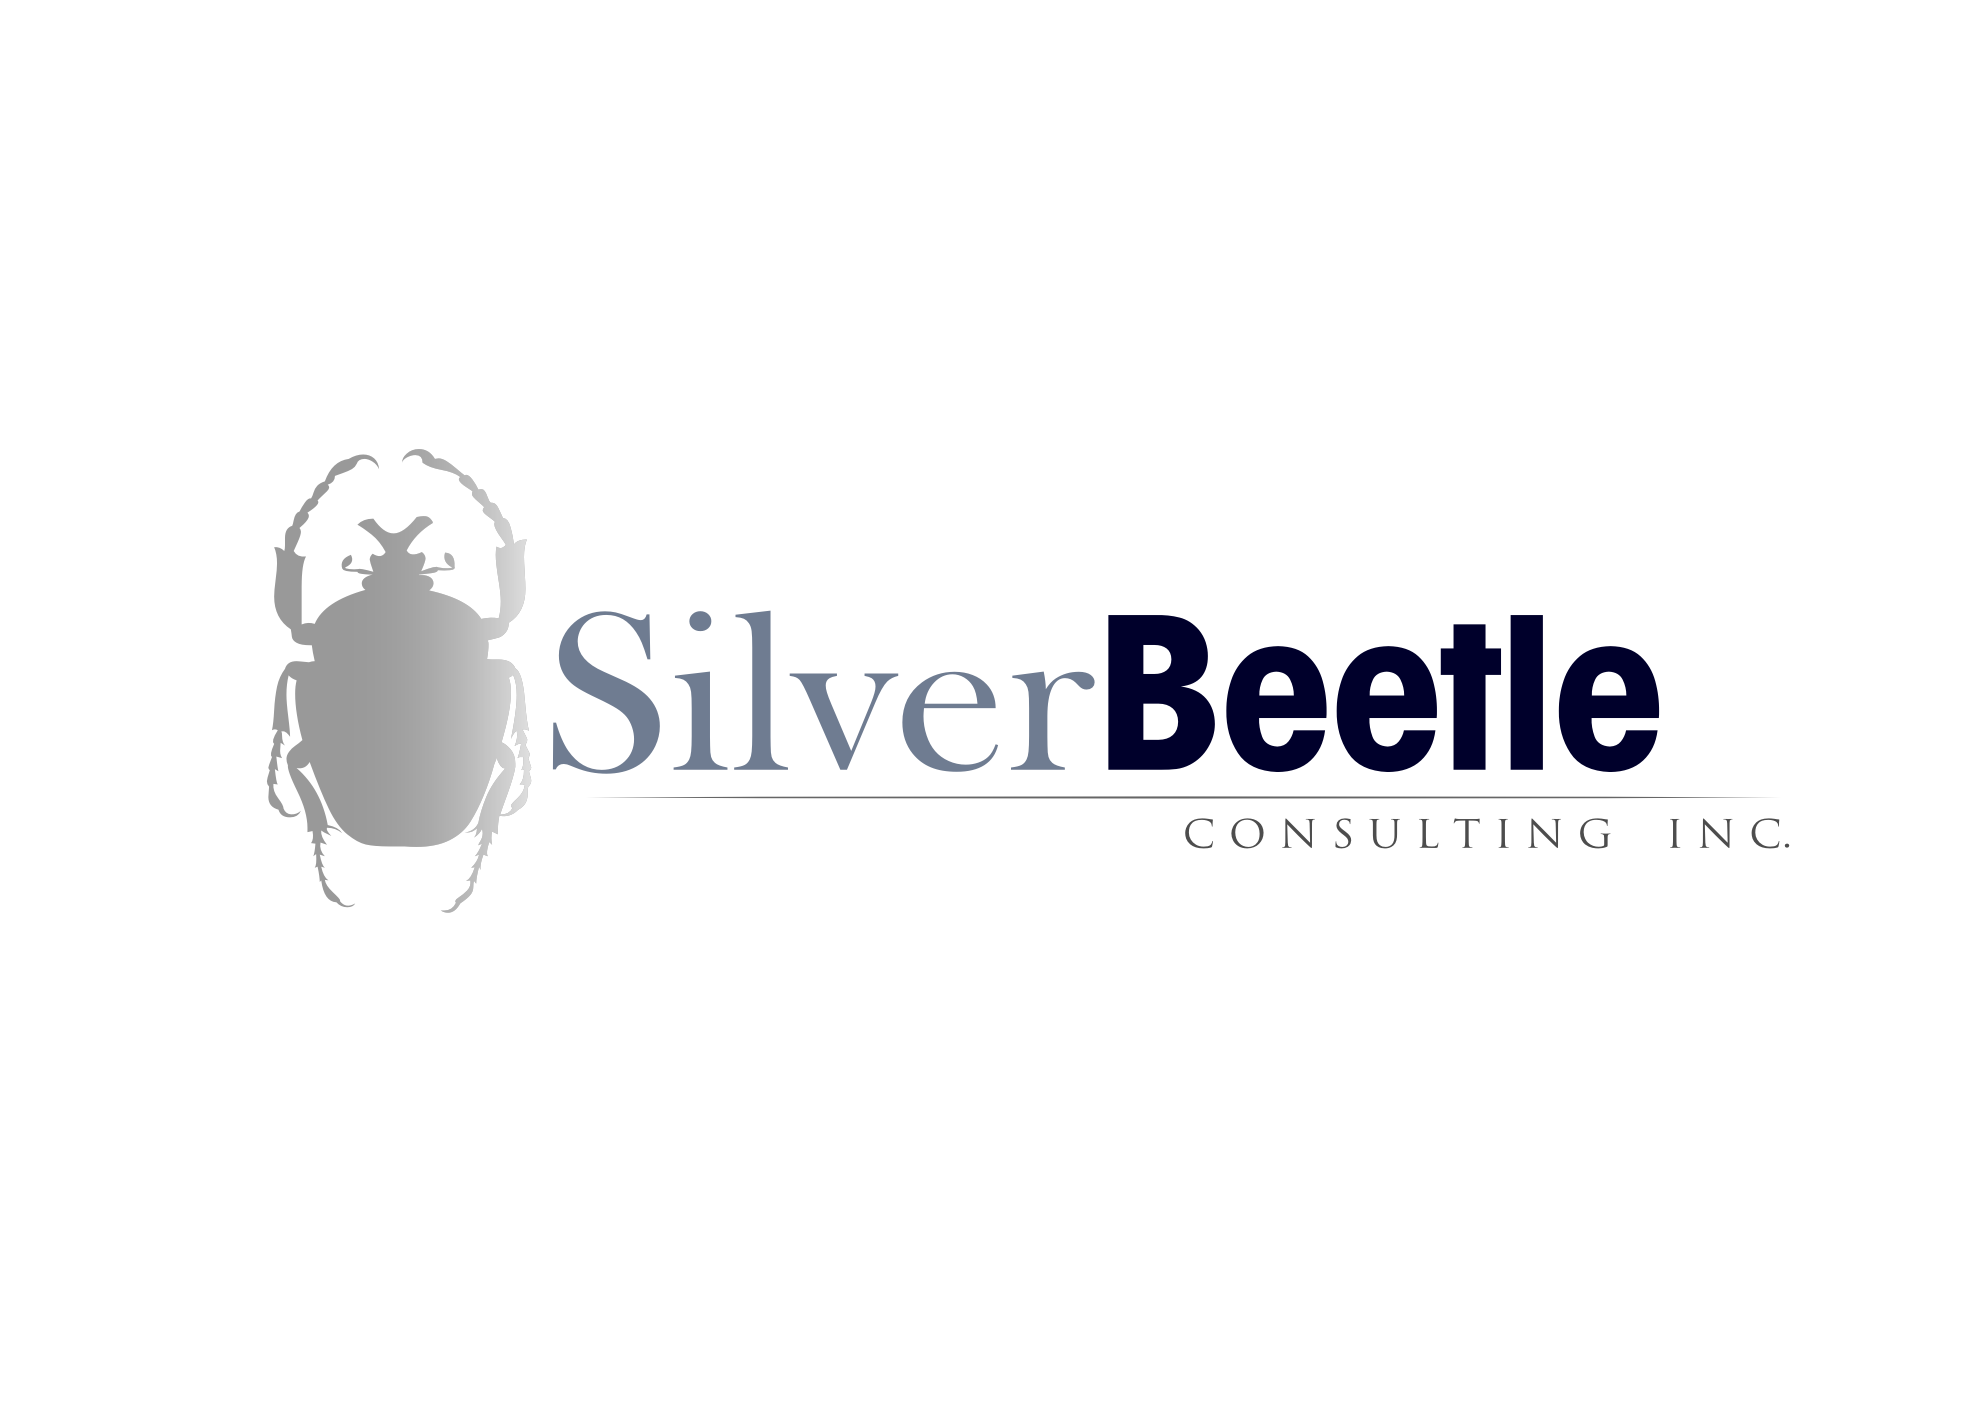 Logo Design by whoosef - Entry No. 75 in the Logo Design Contest Silver Beetle Consulting Inc. Logo Design.